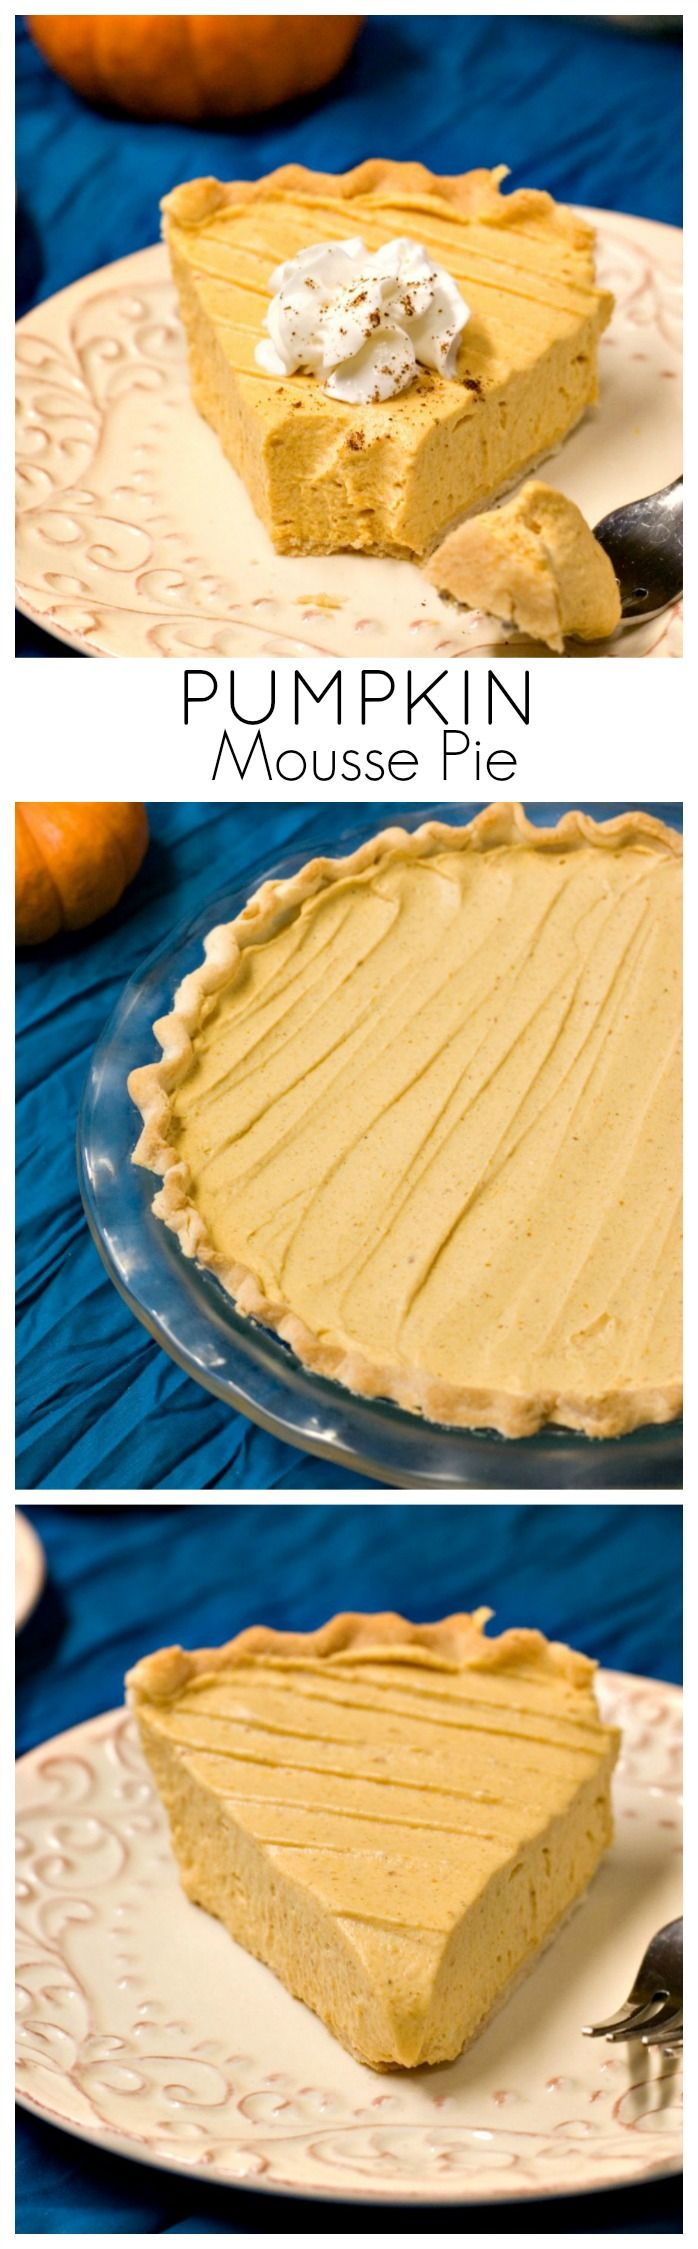 Pumpkin Mousse Pie - light and creamy no-bake pumpkin pie that's a perfect finish to a Thanksgiving dinner.